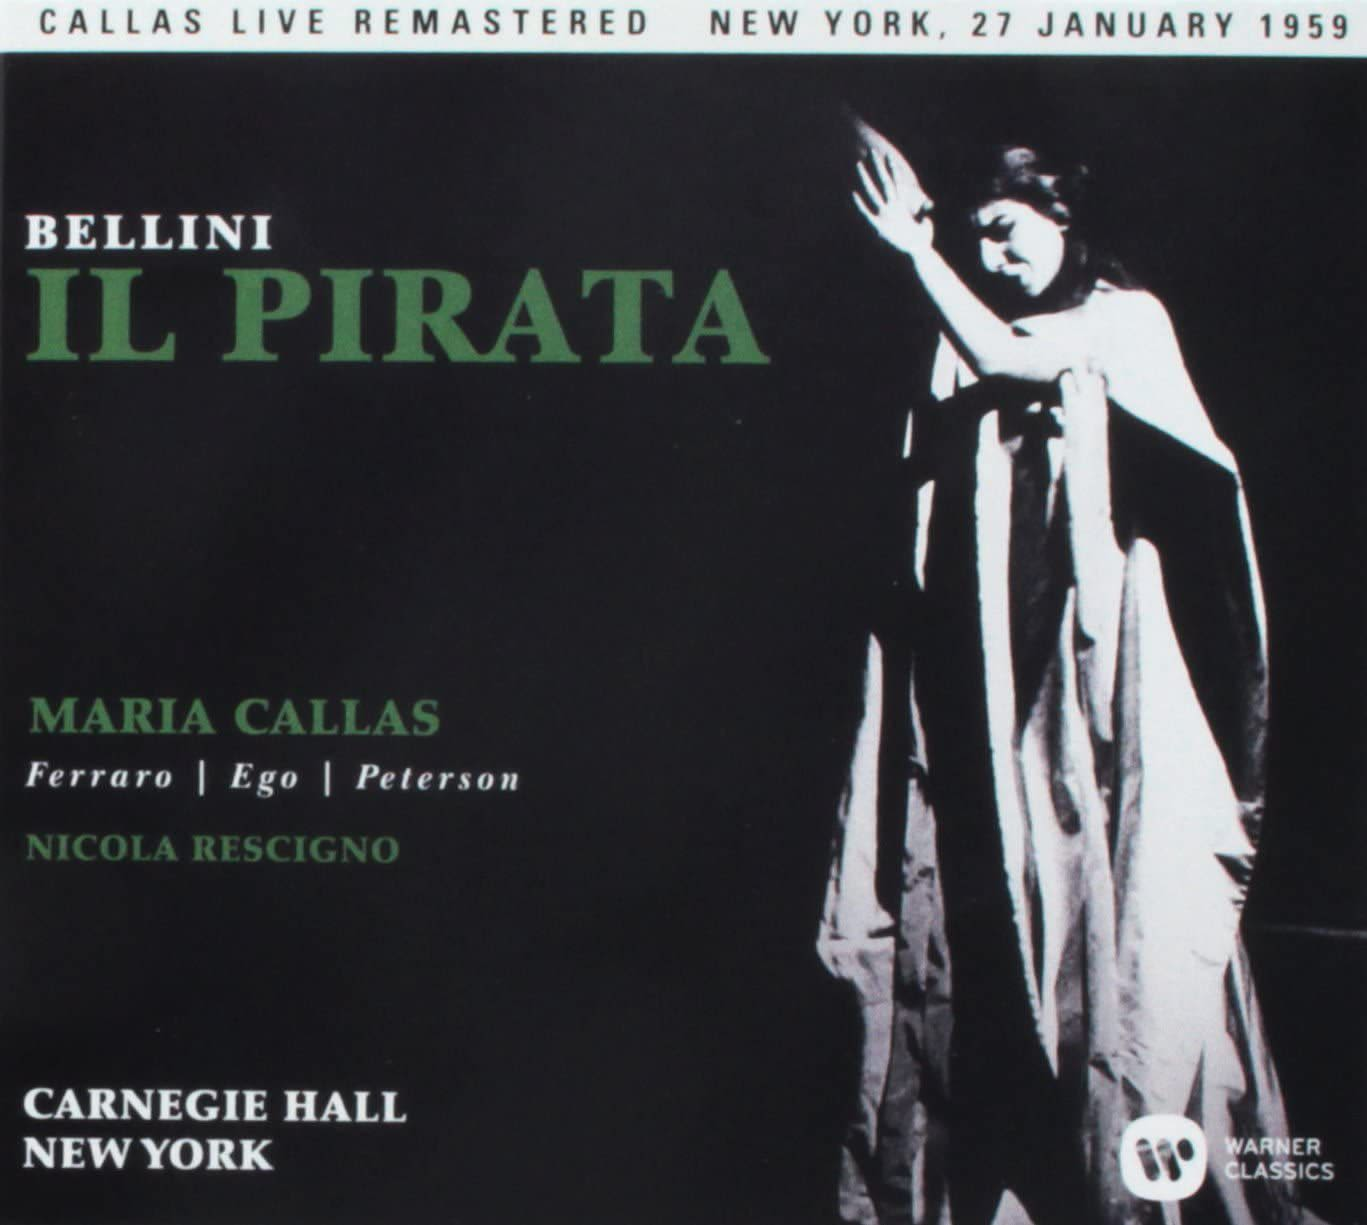 Photo No.1 of Bellini: Il pirata (1959) Callas Live Remastered